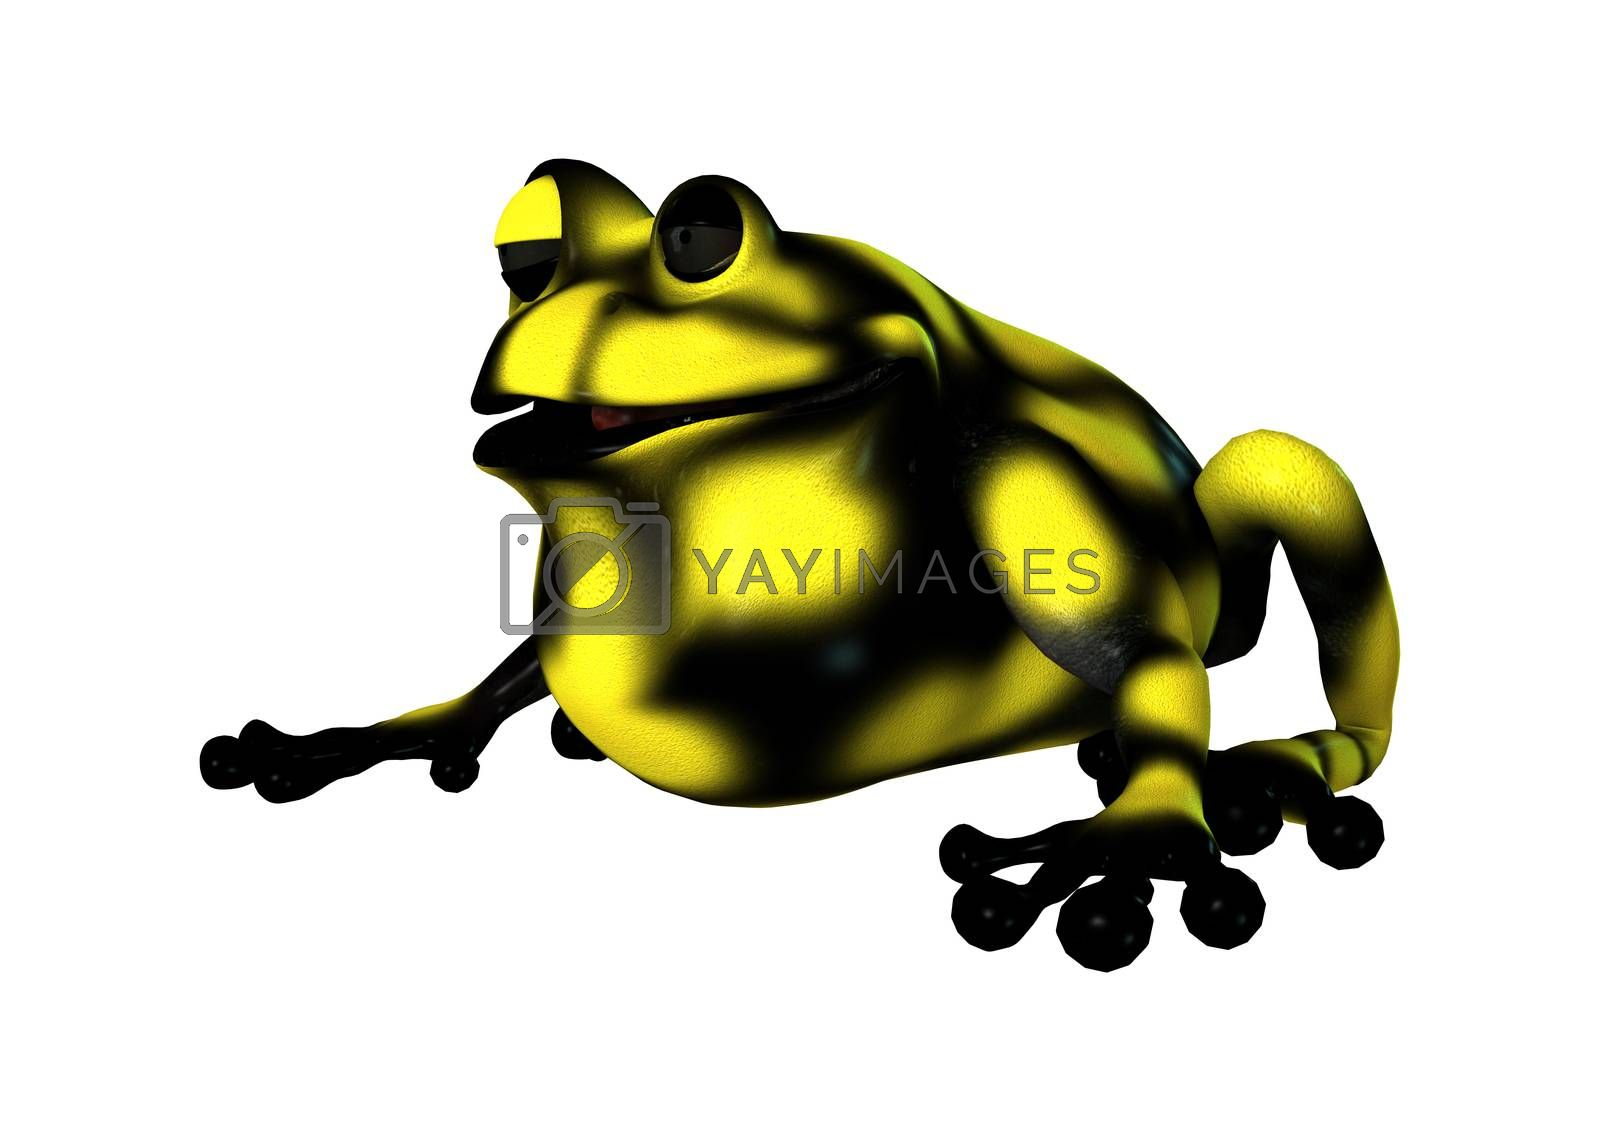 Royalty free image of Yellow Frog by Vac